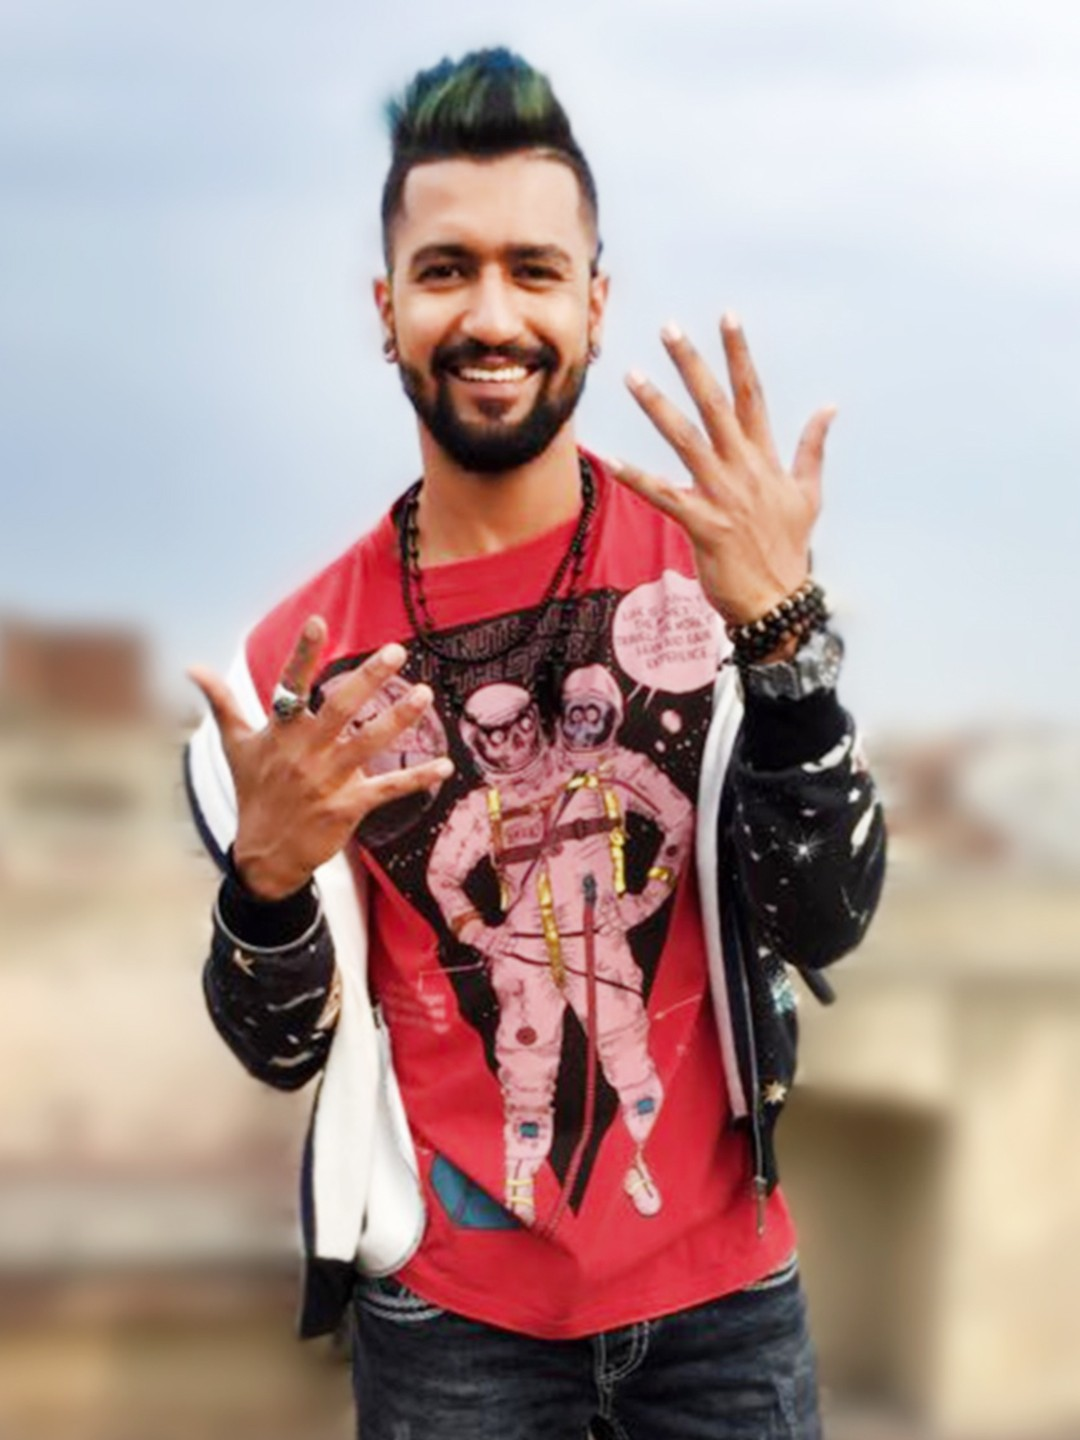 Bollywoo Multi In The Style Of Vicky Kaushal Placement Slogan Print T-Shirt 1